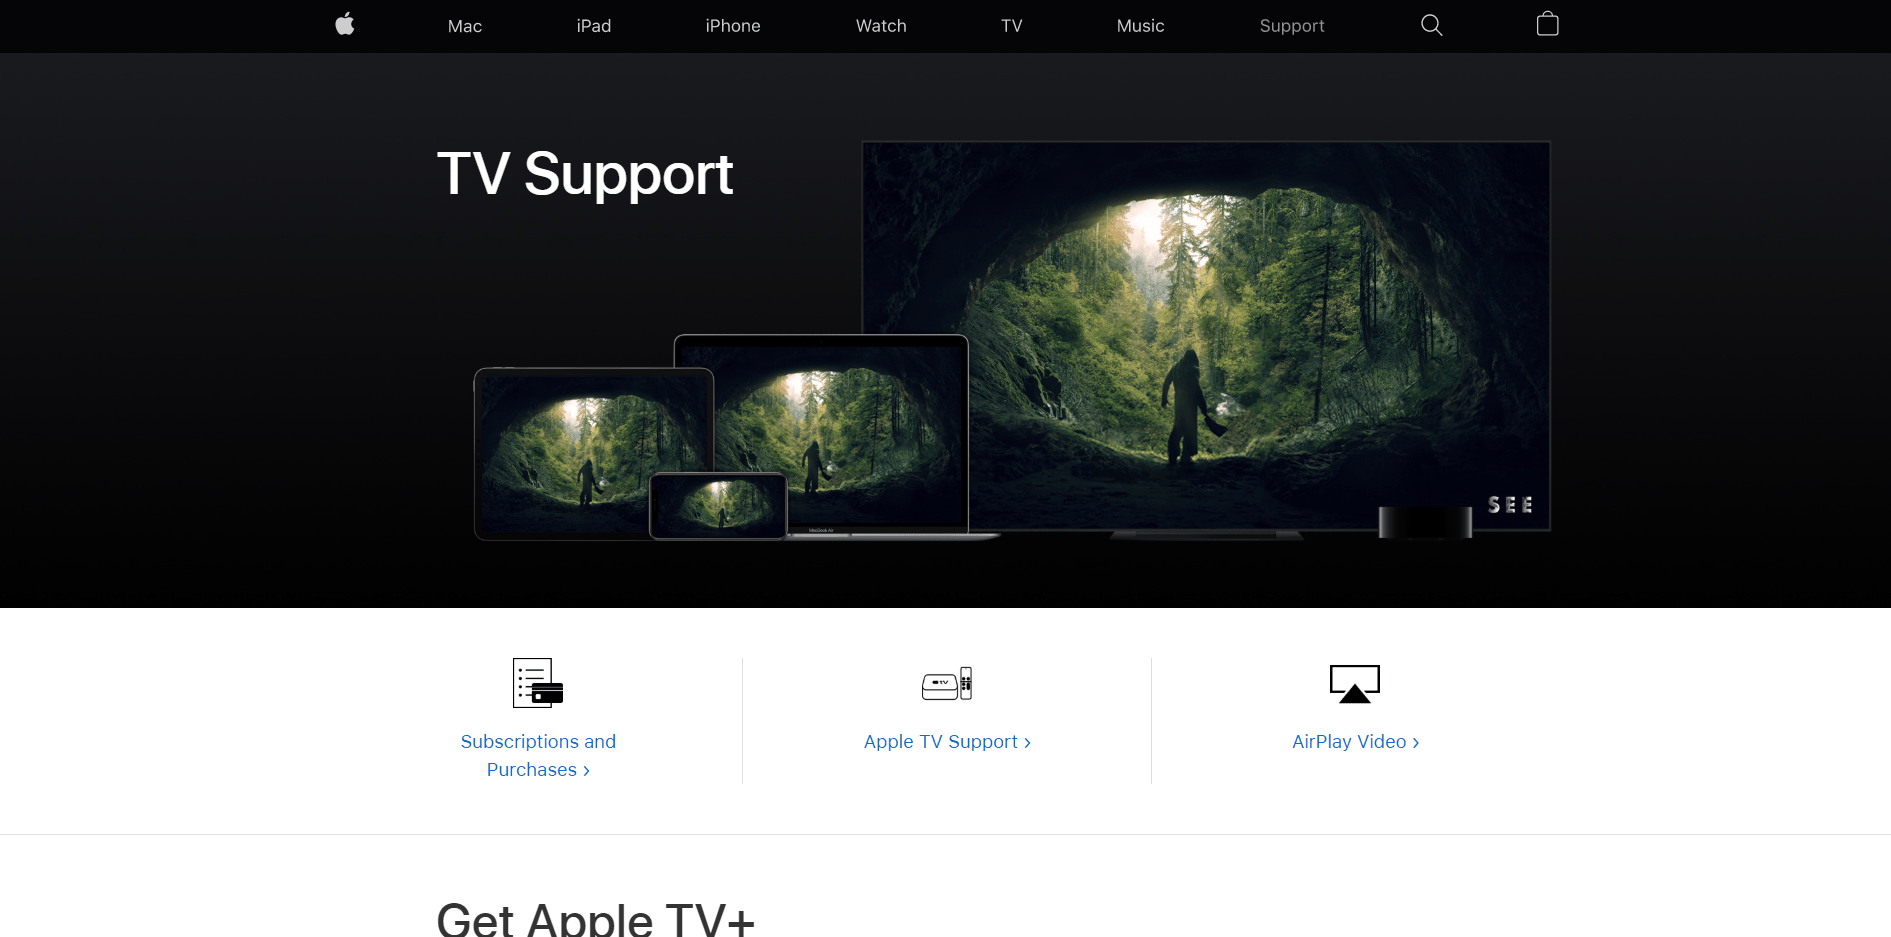 Apple TV Support